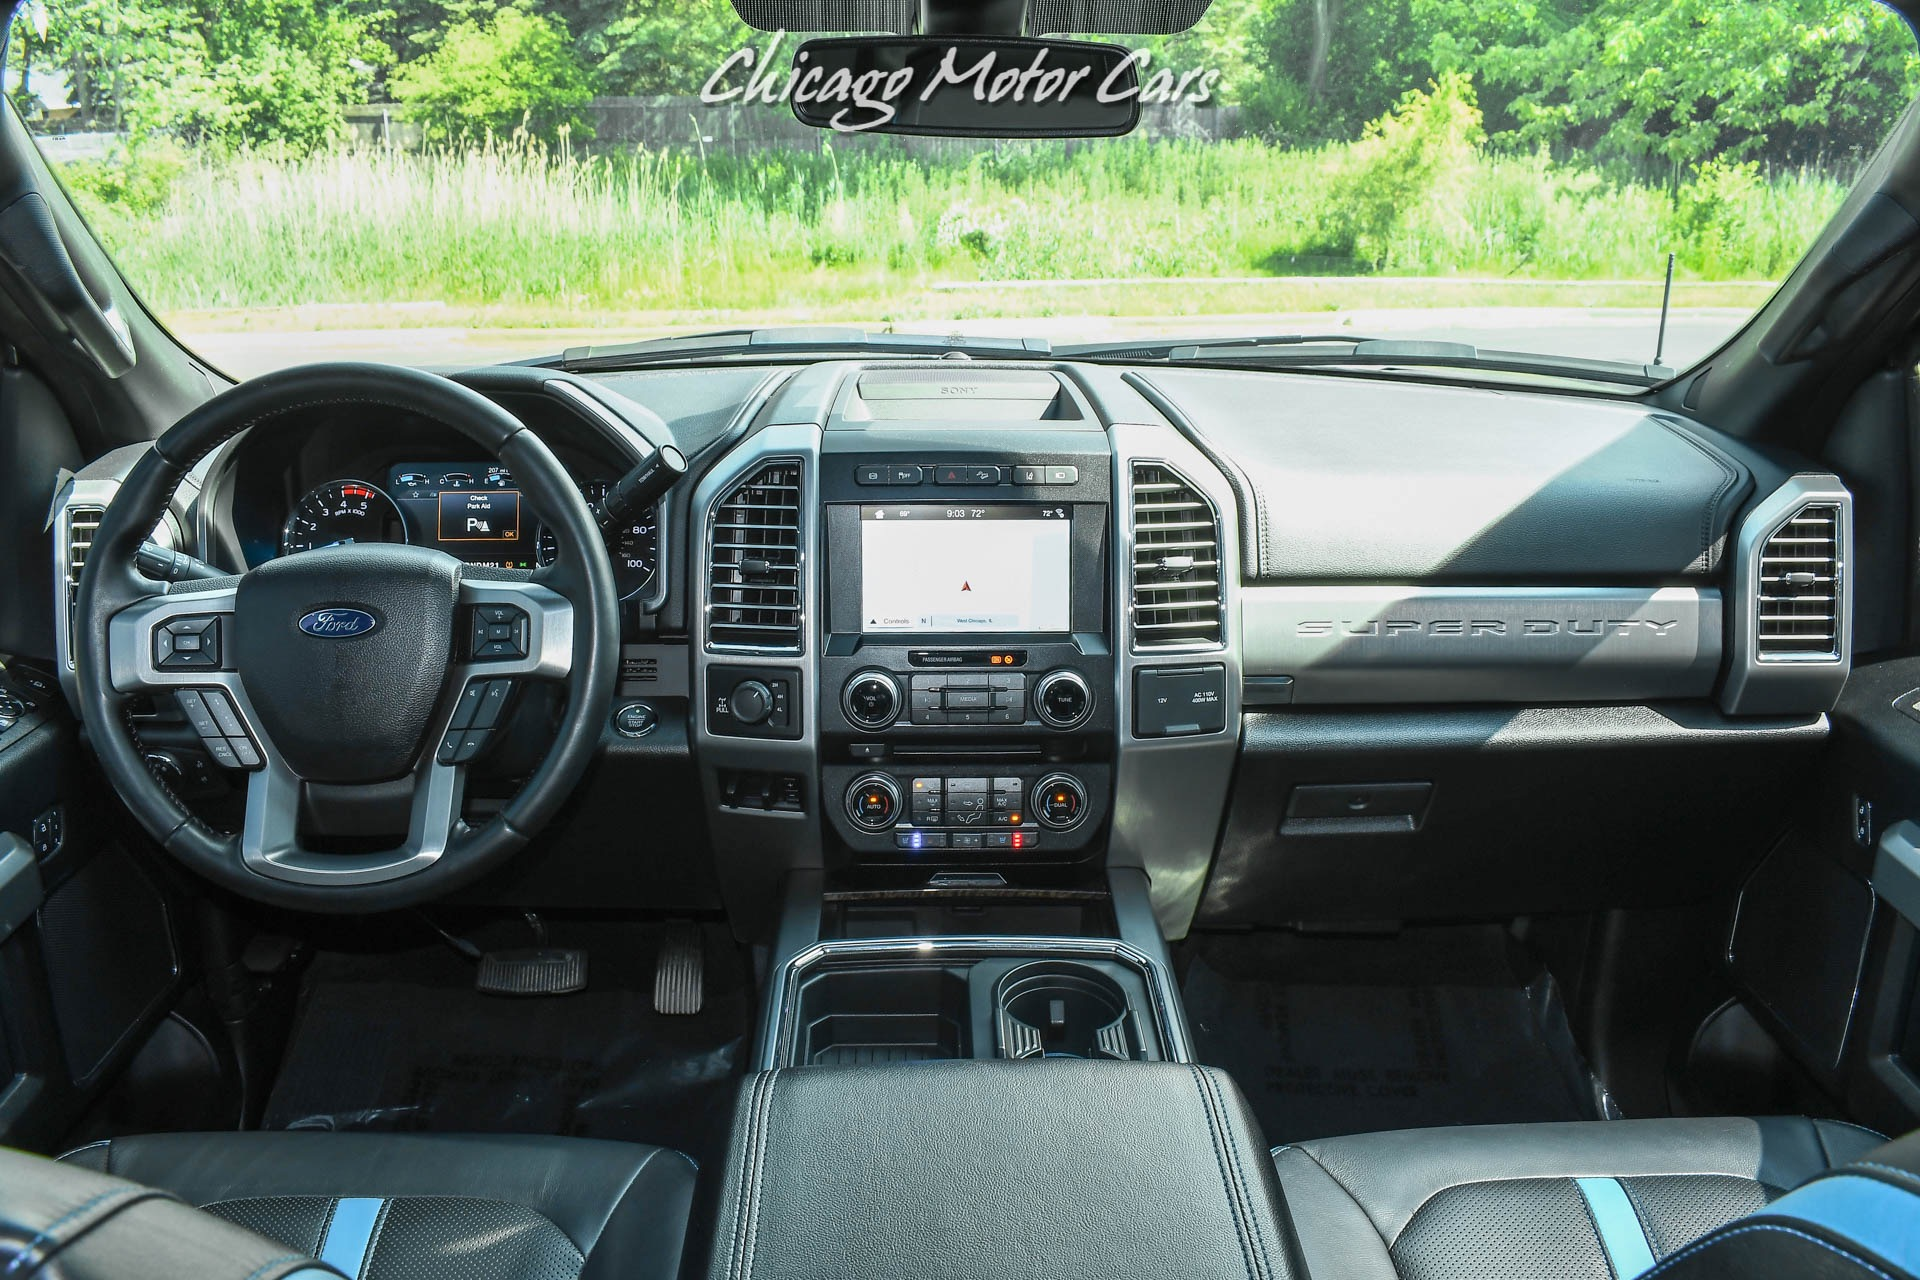 Used-2017-Ford-F-350-Super-Duty-Platinum-ADA-Build-Over-150k-in-UPGRADES